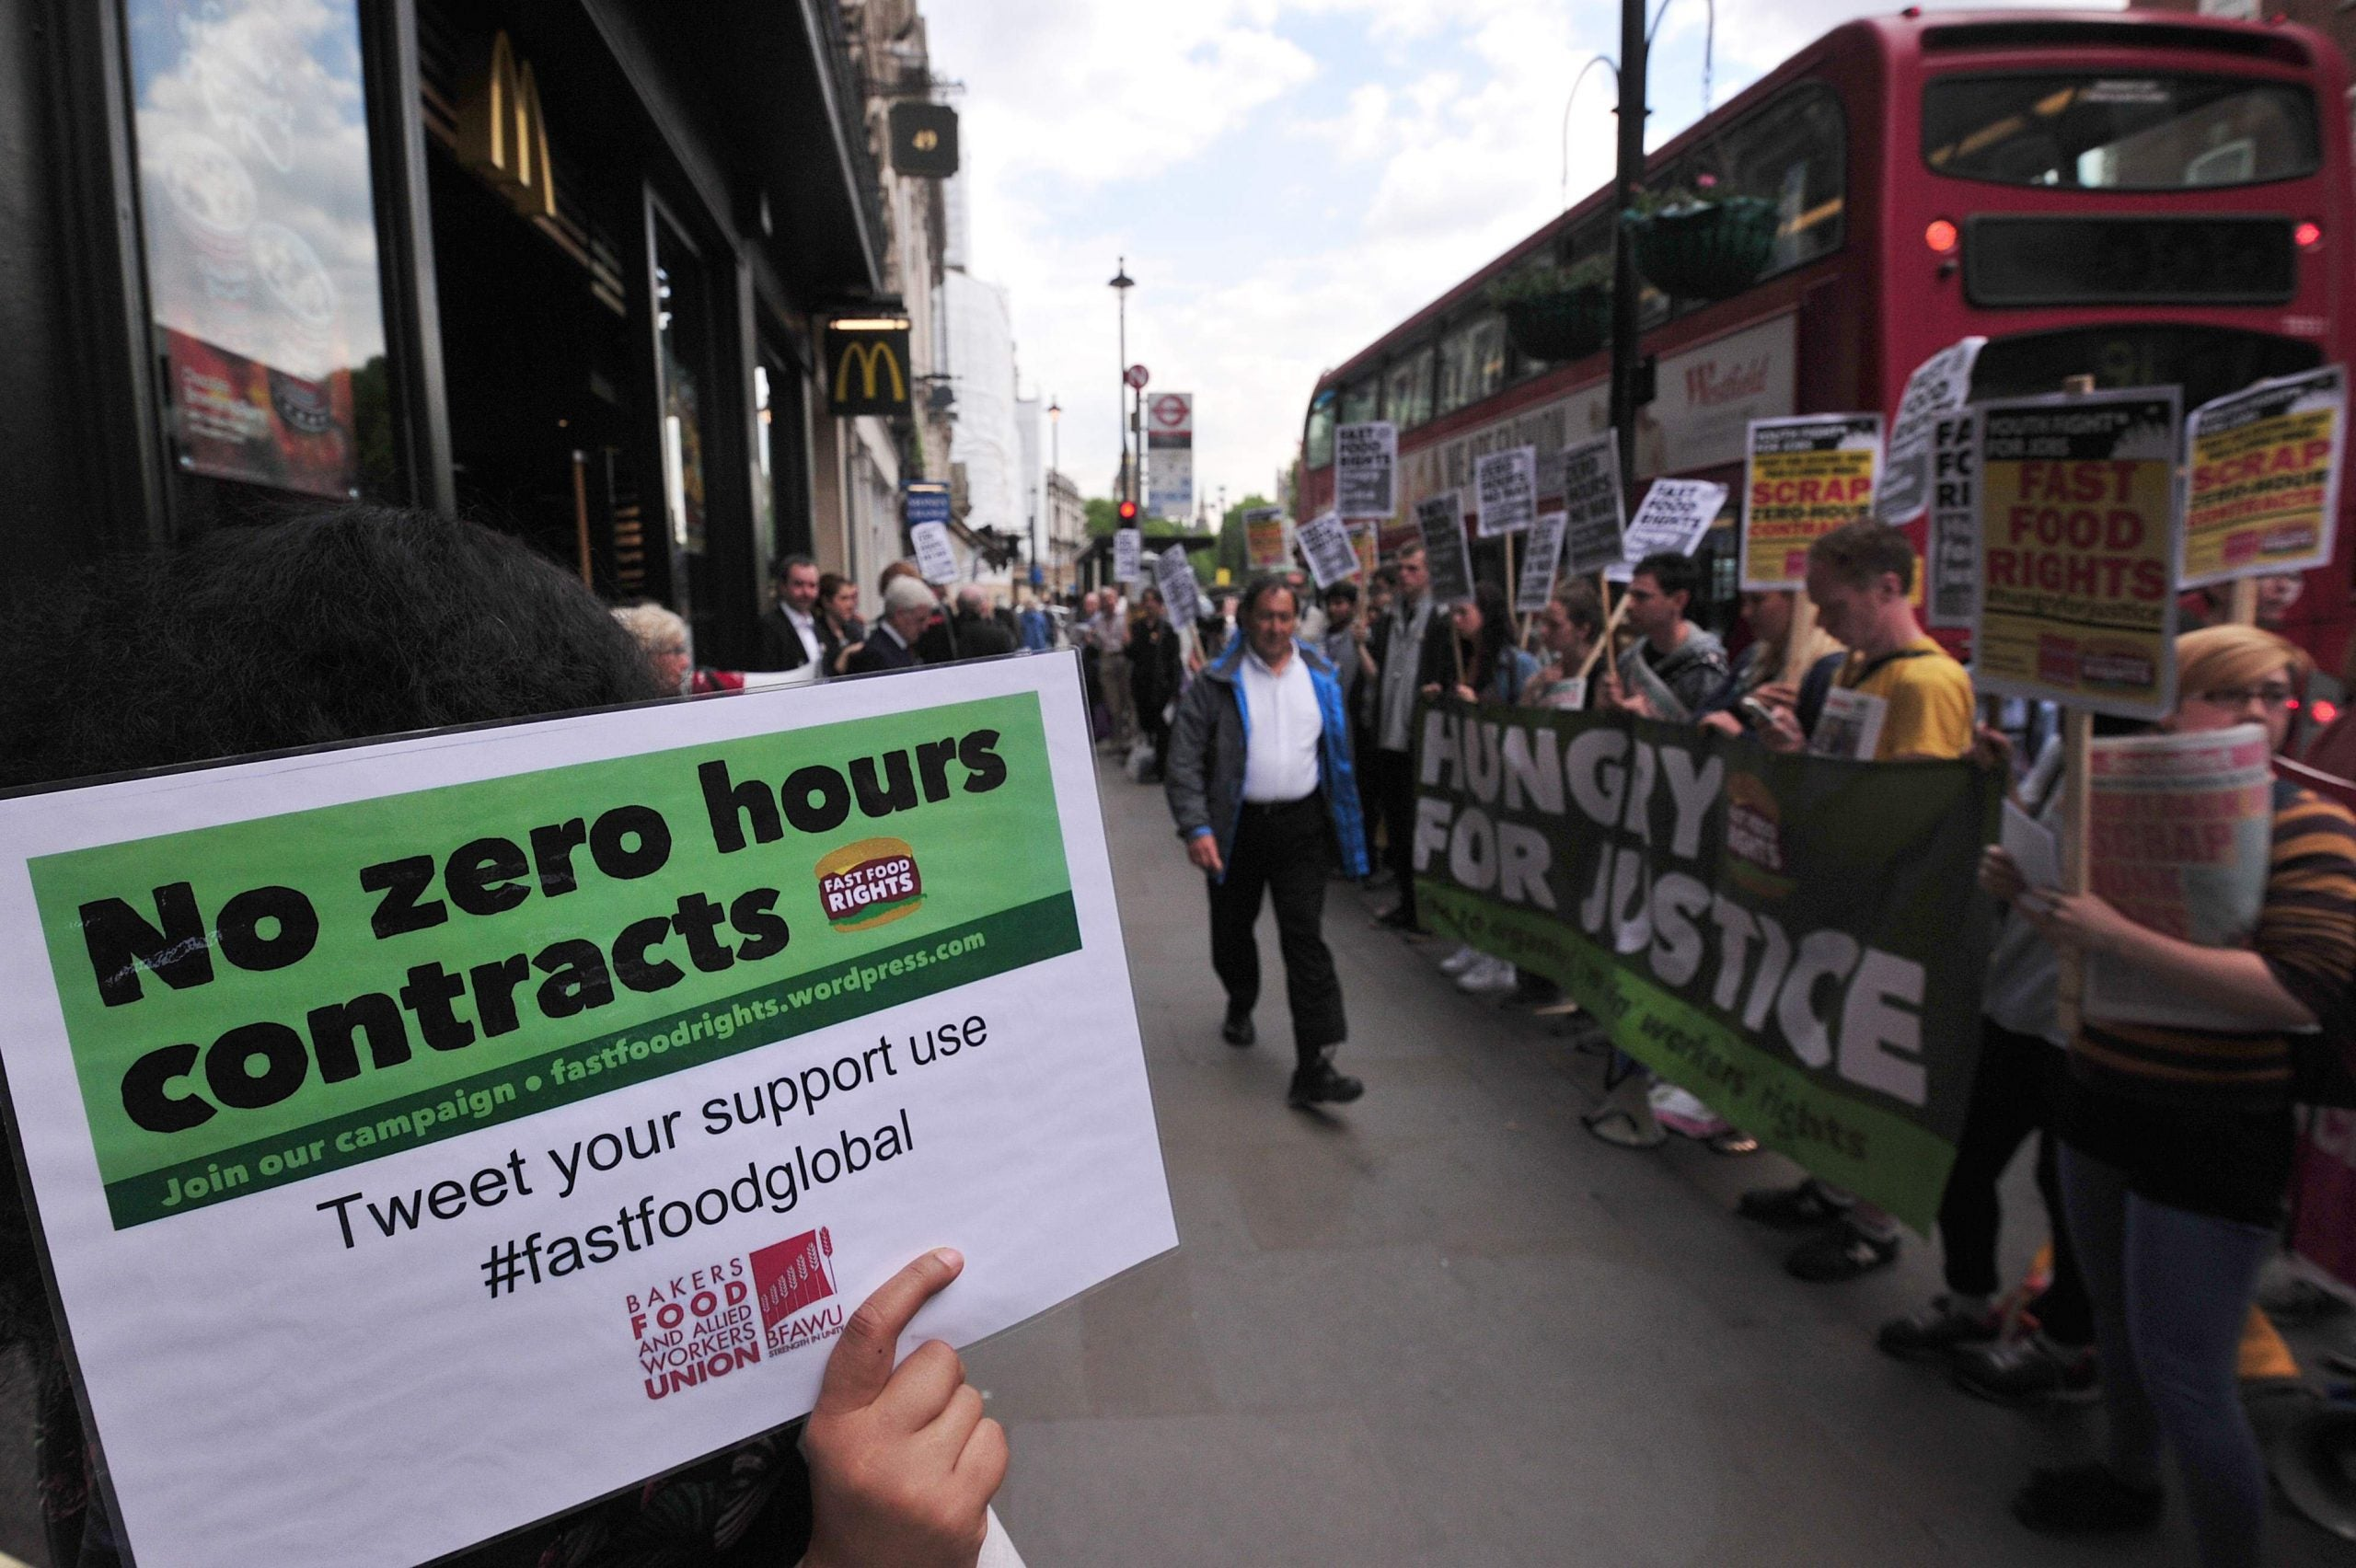 Public pressure on employers is no match for a legally-enforced living wage